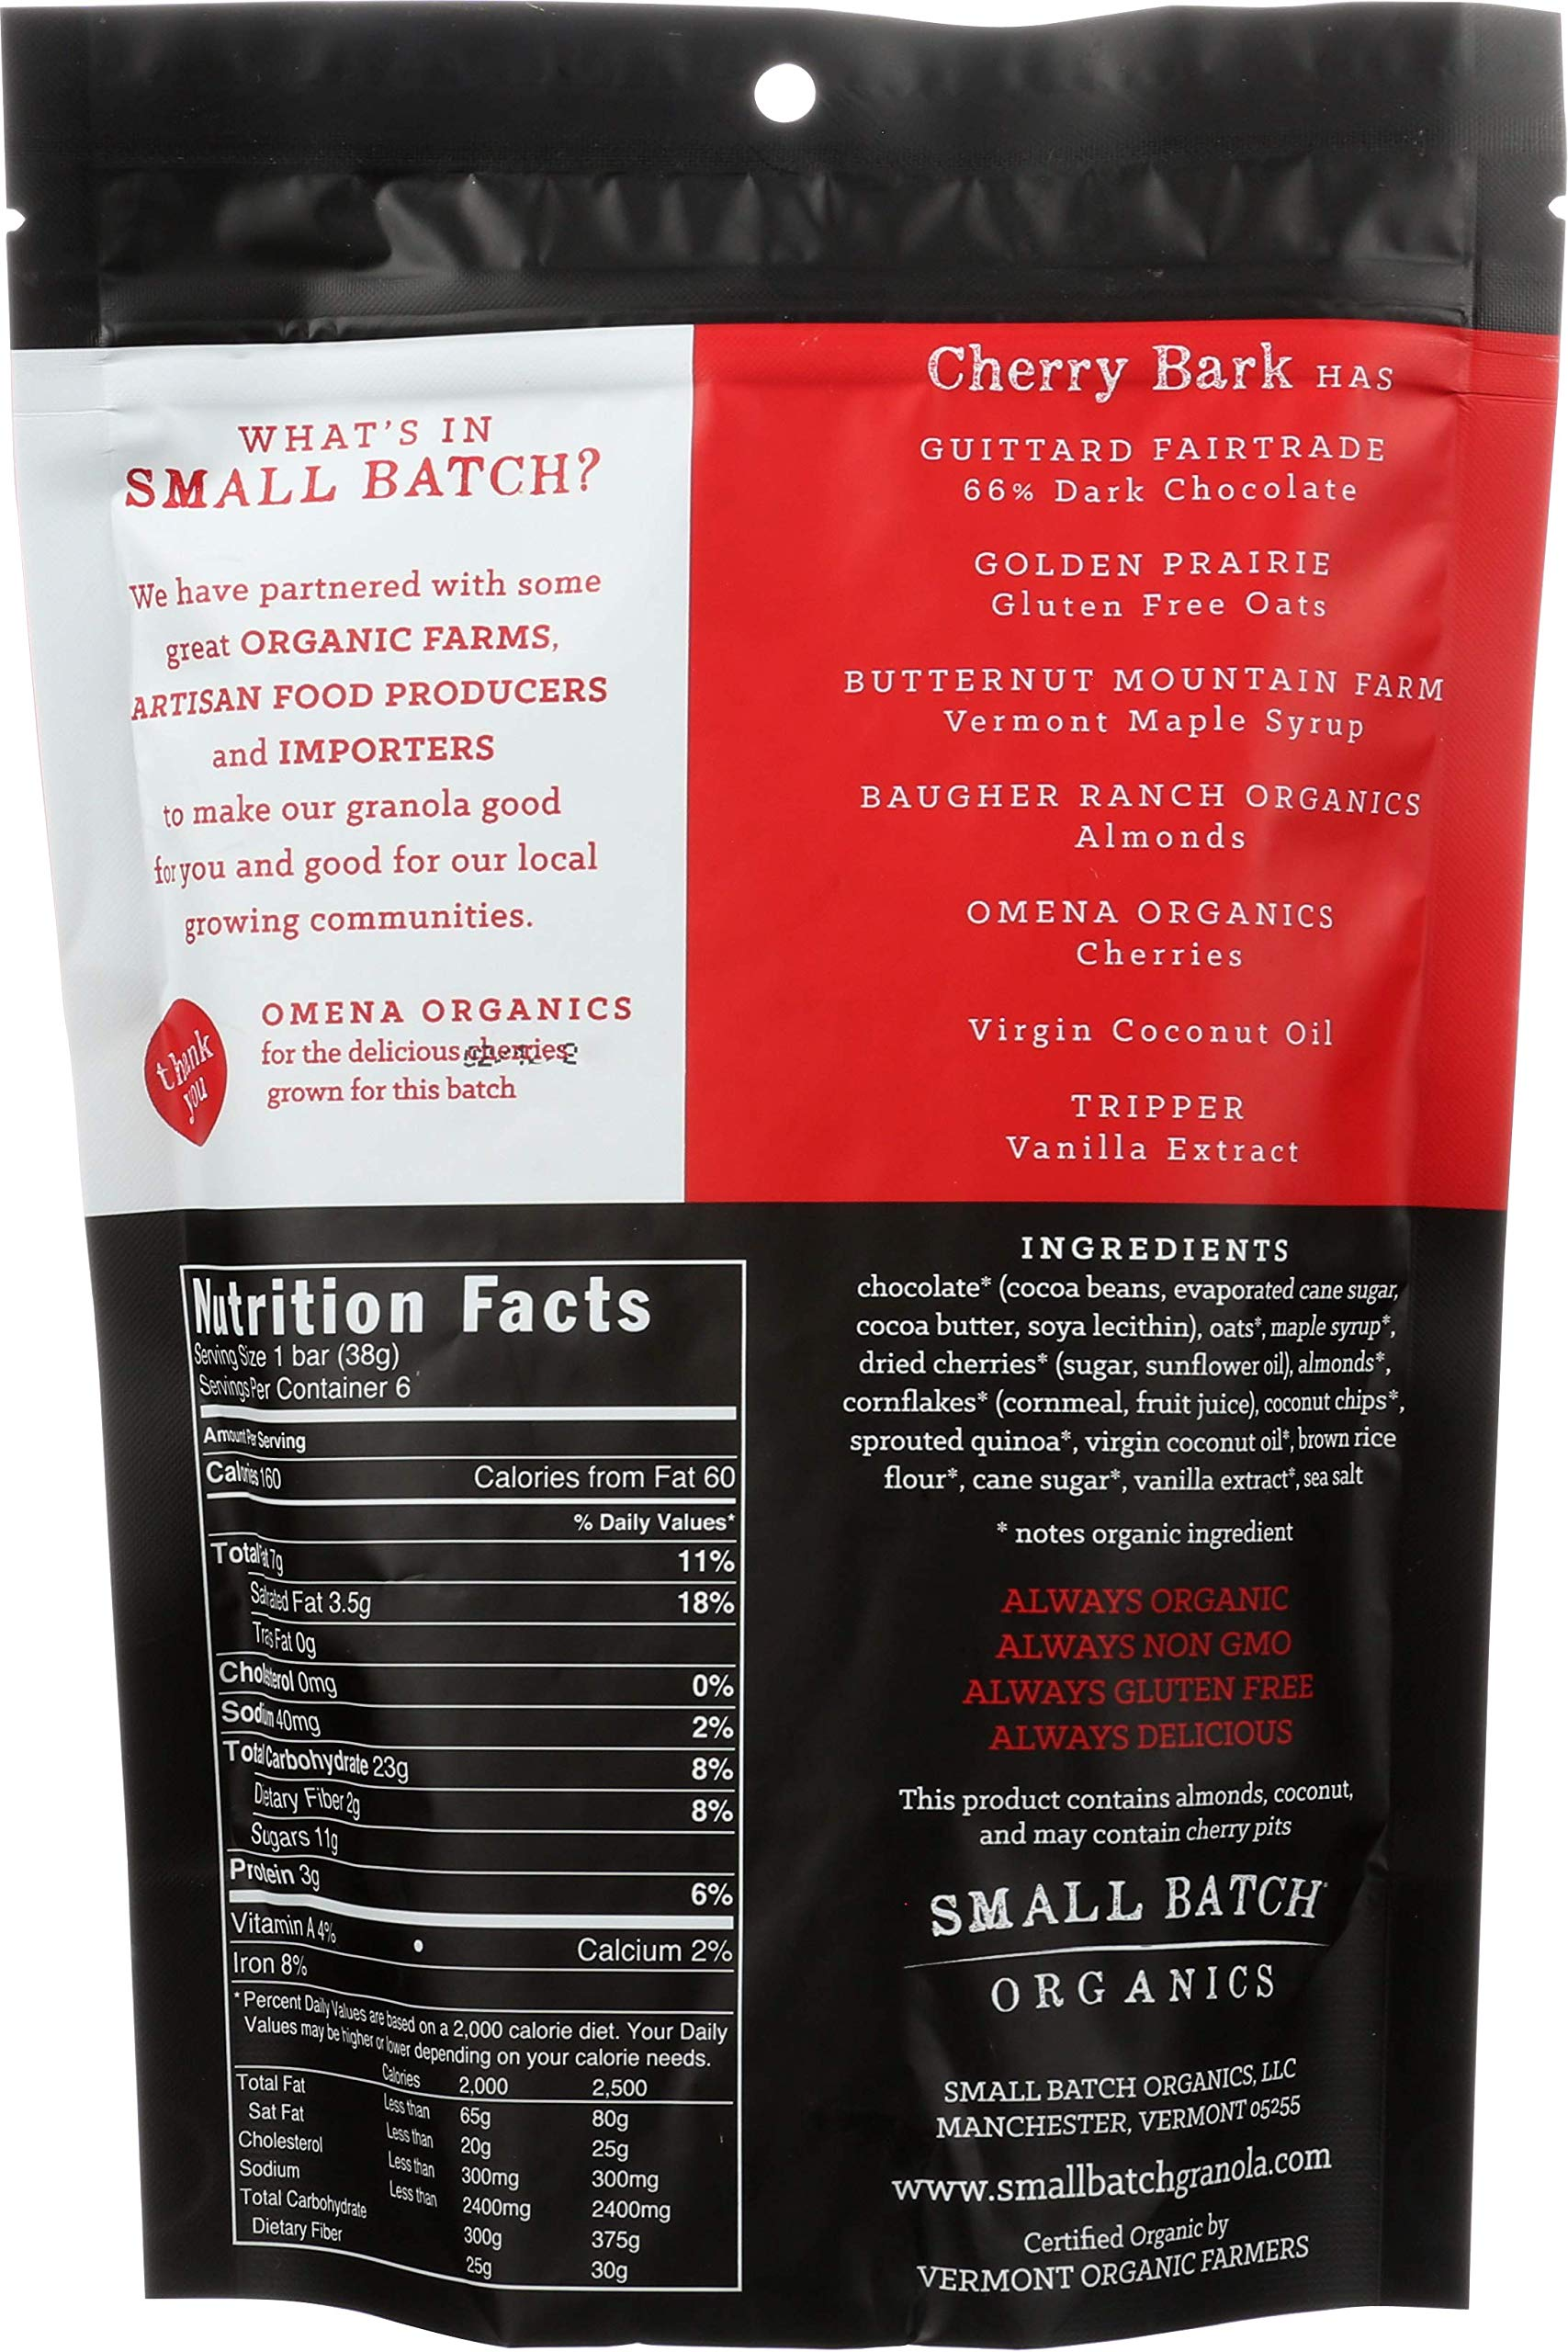 SMALL BATCH ORGANICS Organic Cherry Bark Granola, 8 OZ by Small Batch Organics (Image #2)